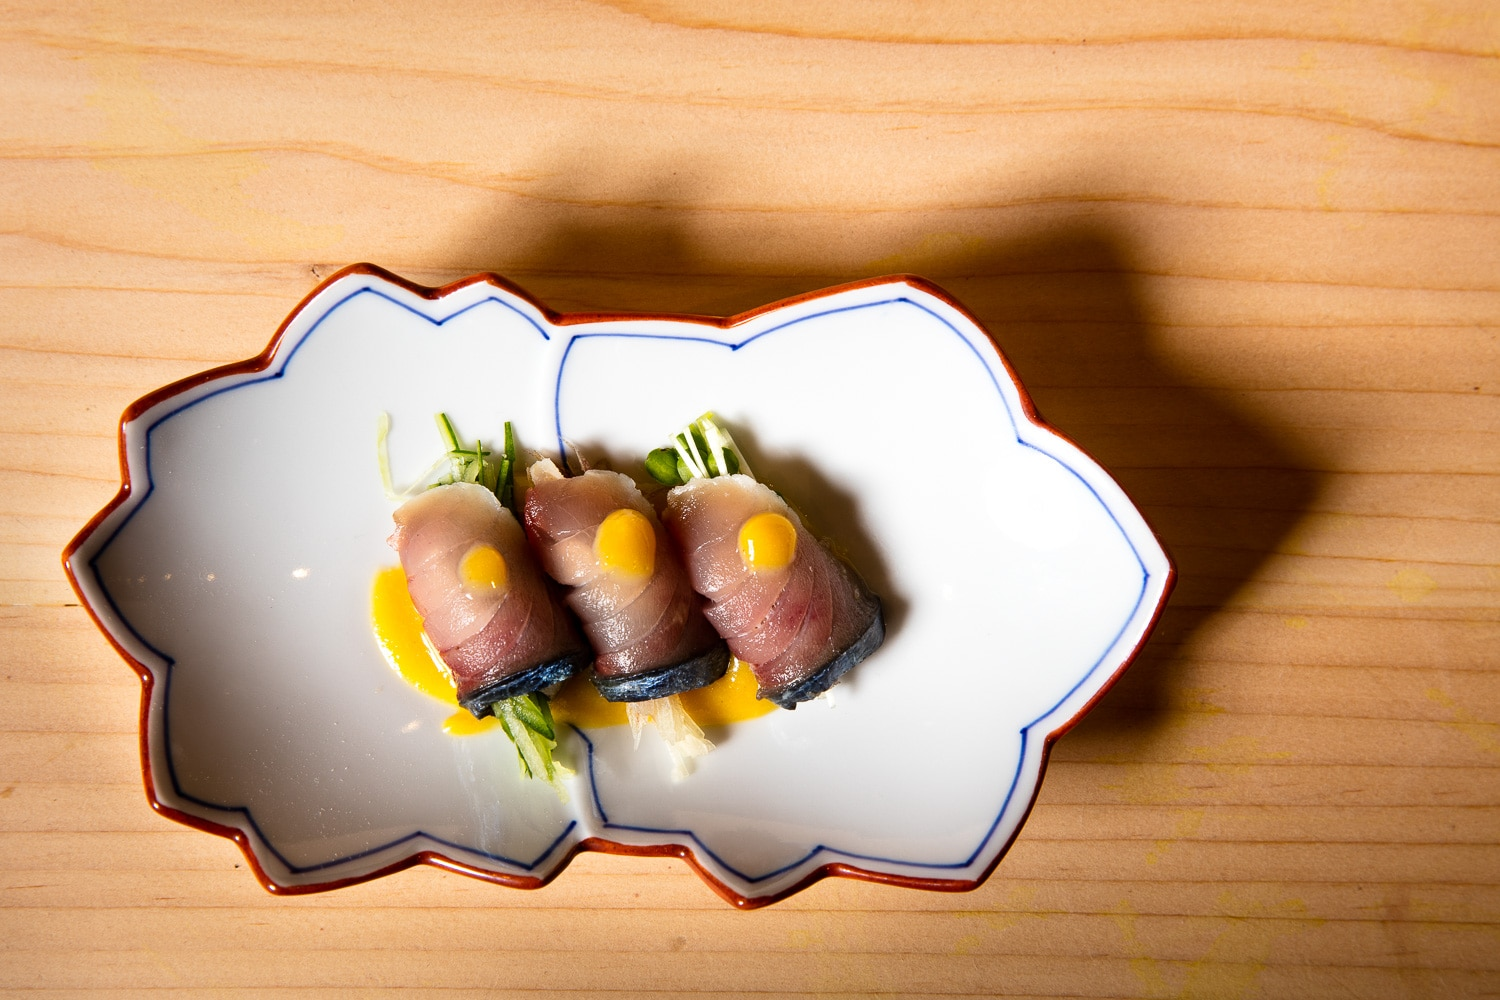 A thinly sliced piece of sashimi wraps cucumbers with a spicy aioli sauce on it. The ornamental shaped plate casts a hard shadow onto the natural pine wood.